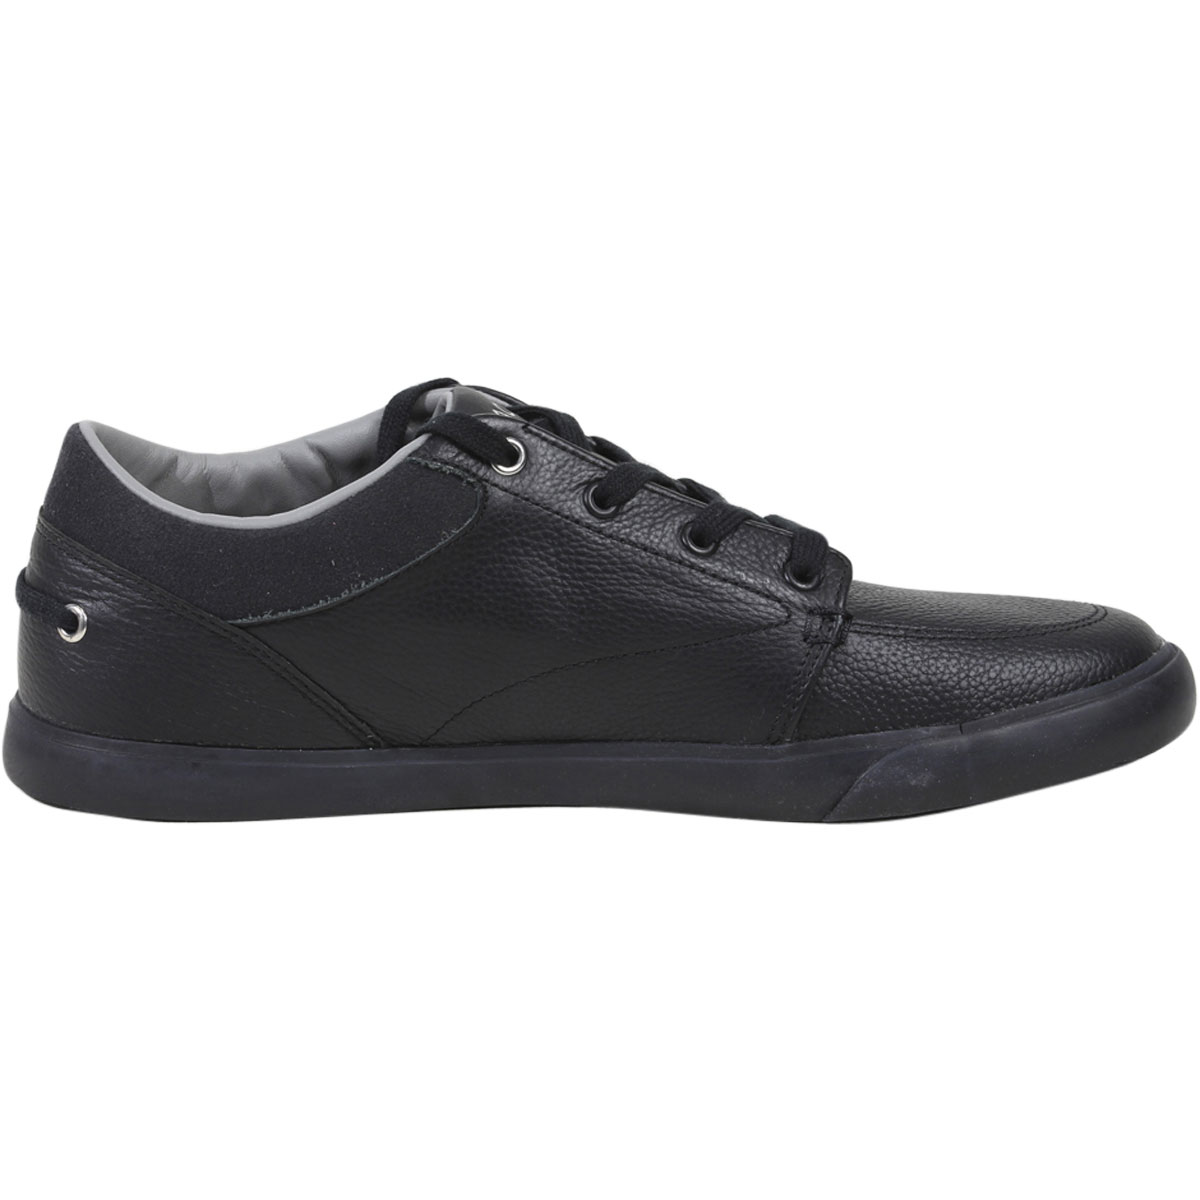 Lacoste-Men-039-s-Bayliss-118-Sneakers-Shoes thumbnail 12